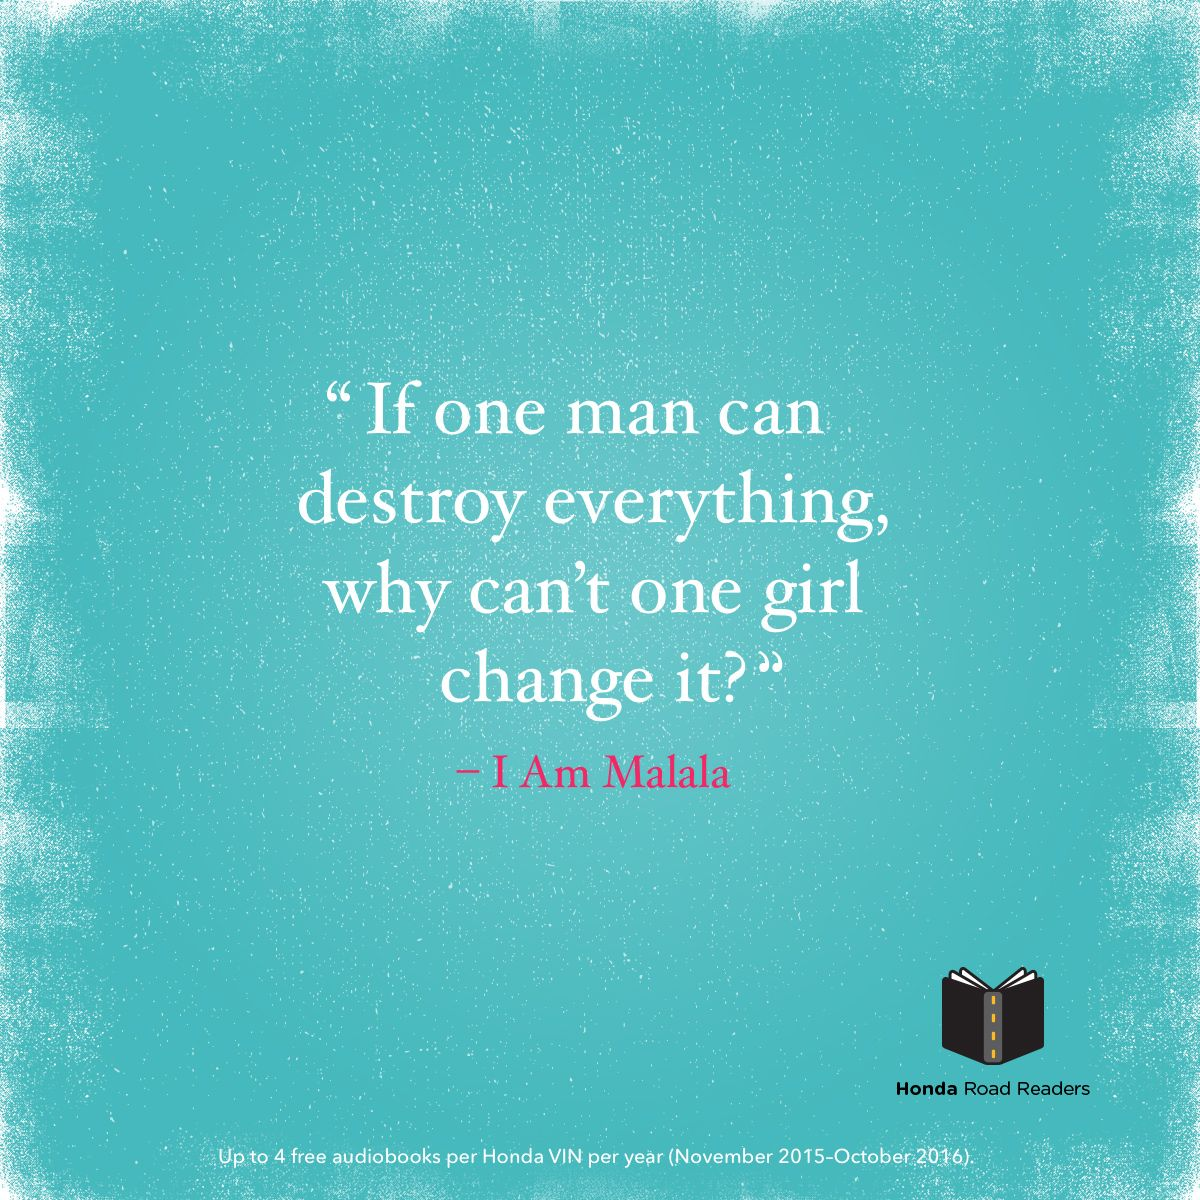 I Am Malala Quotes Angie Miller 2011 New Hampshire State Teacher Of The Year Chose